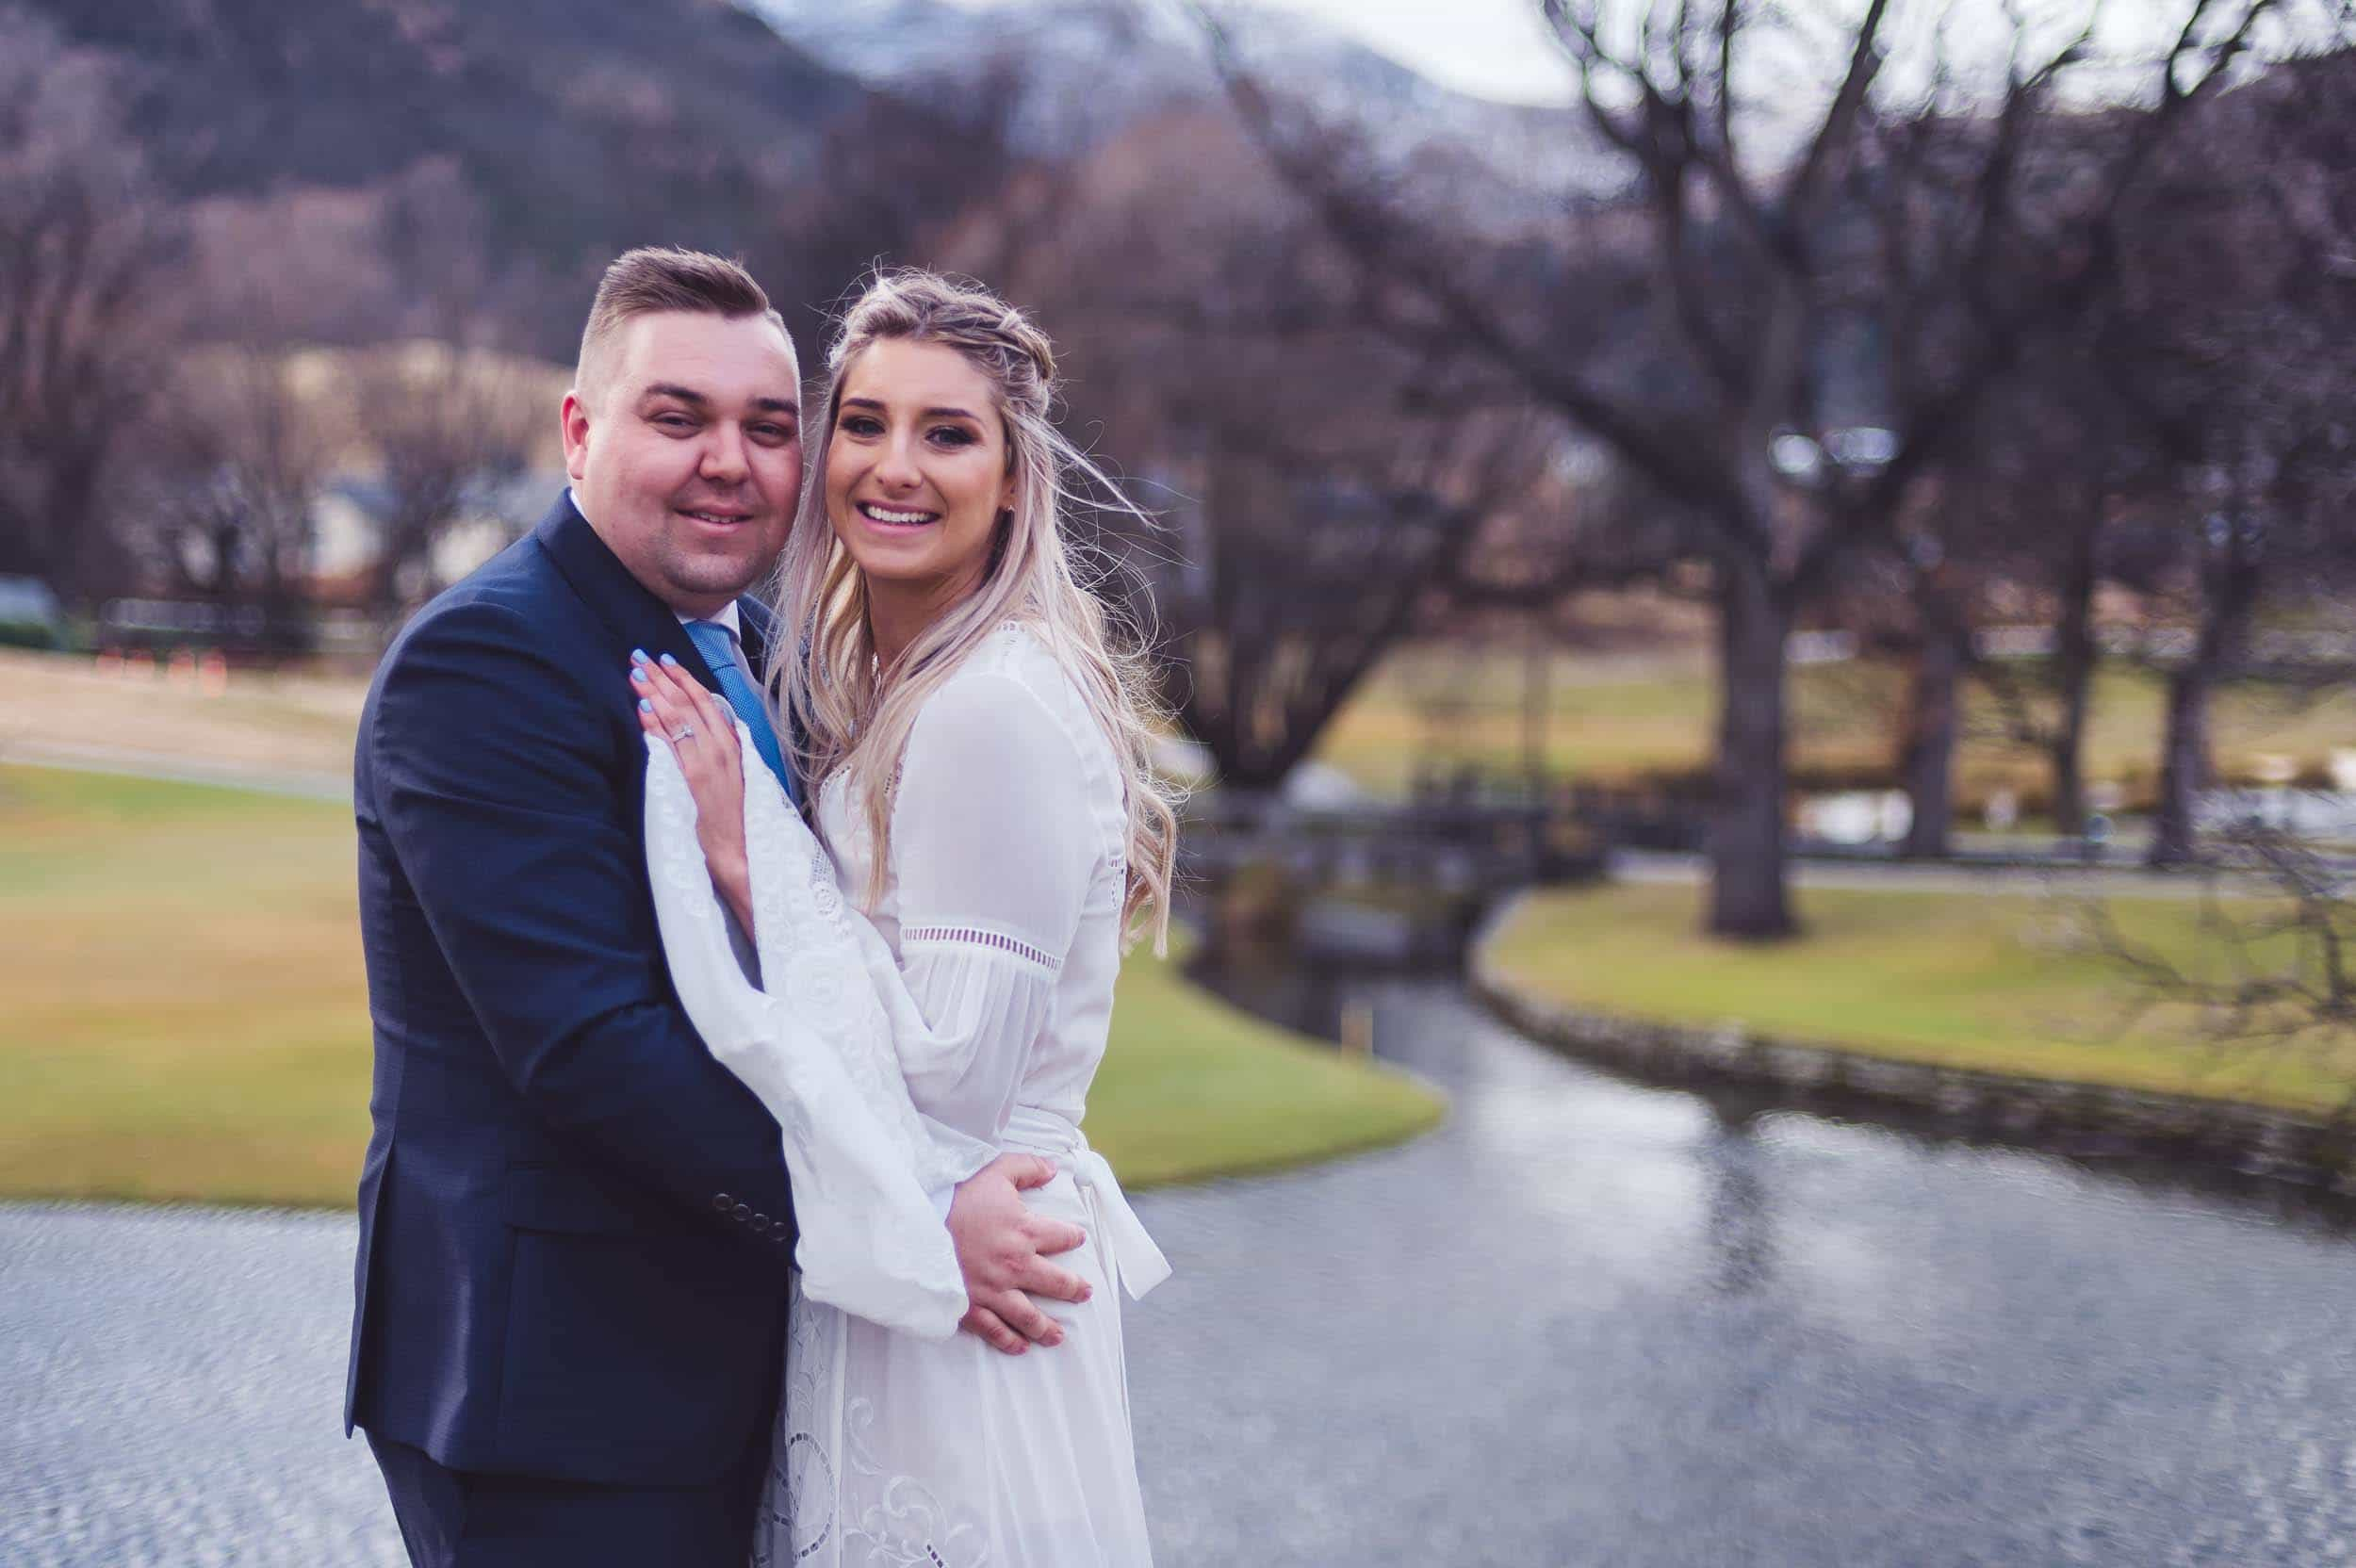 Laura + Nick | Winter Wedding at Milbrook Resort fallon photography